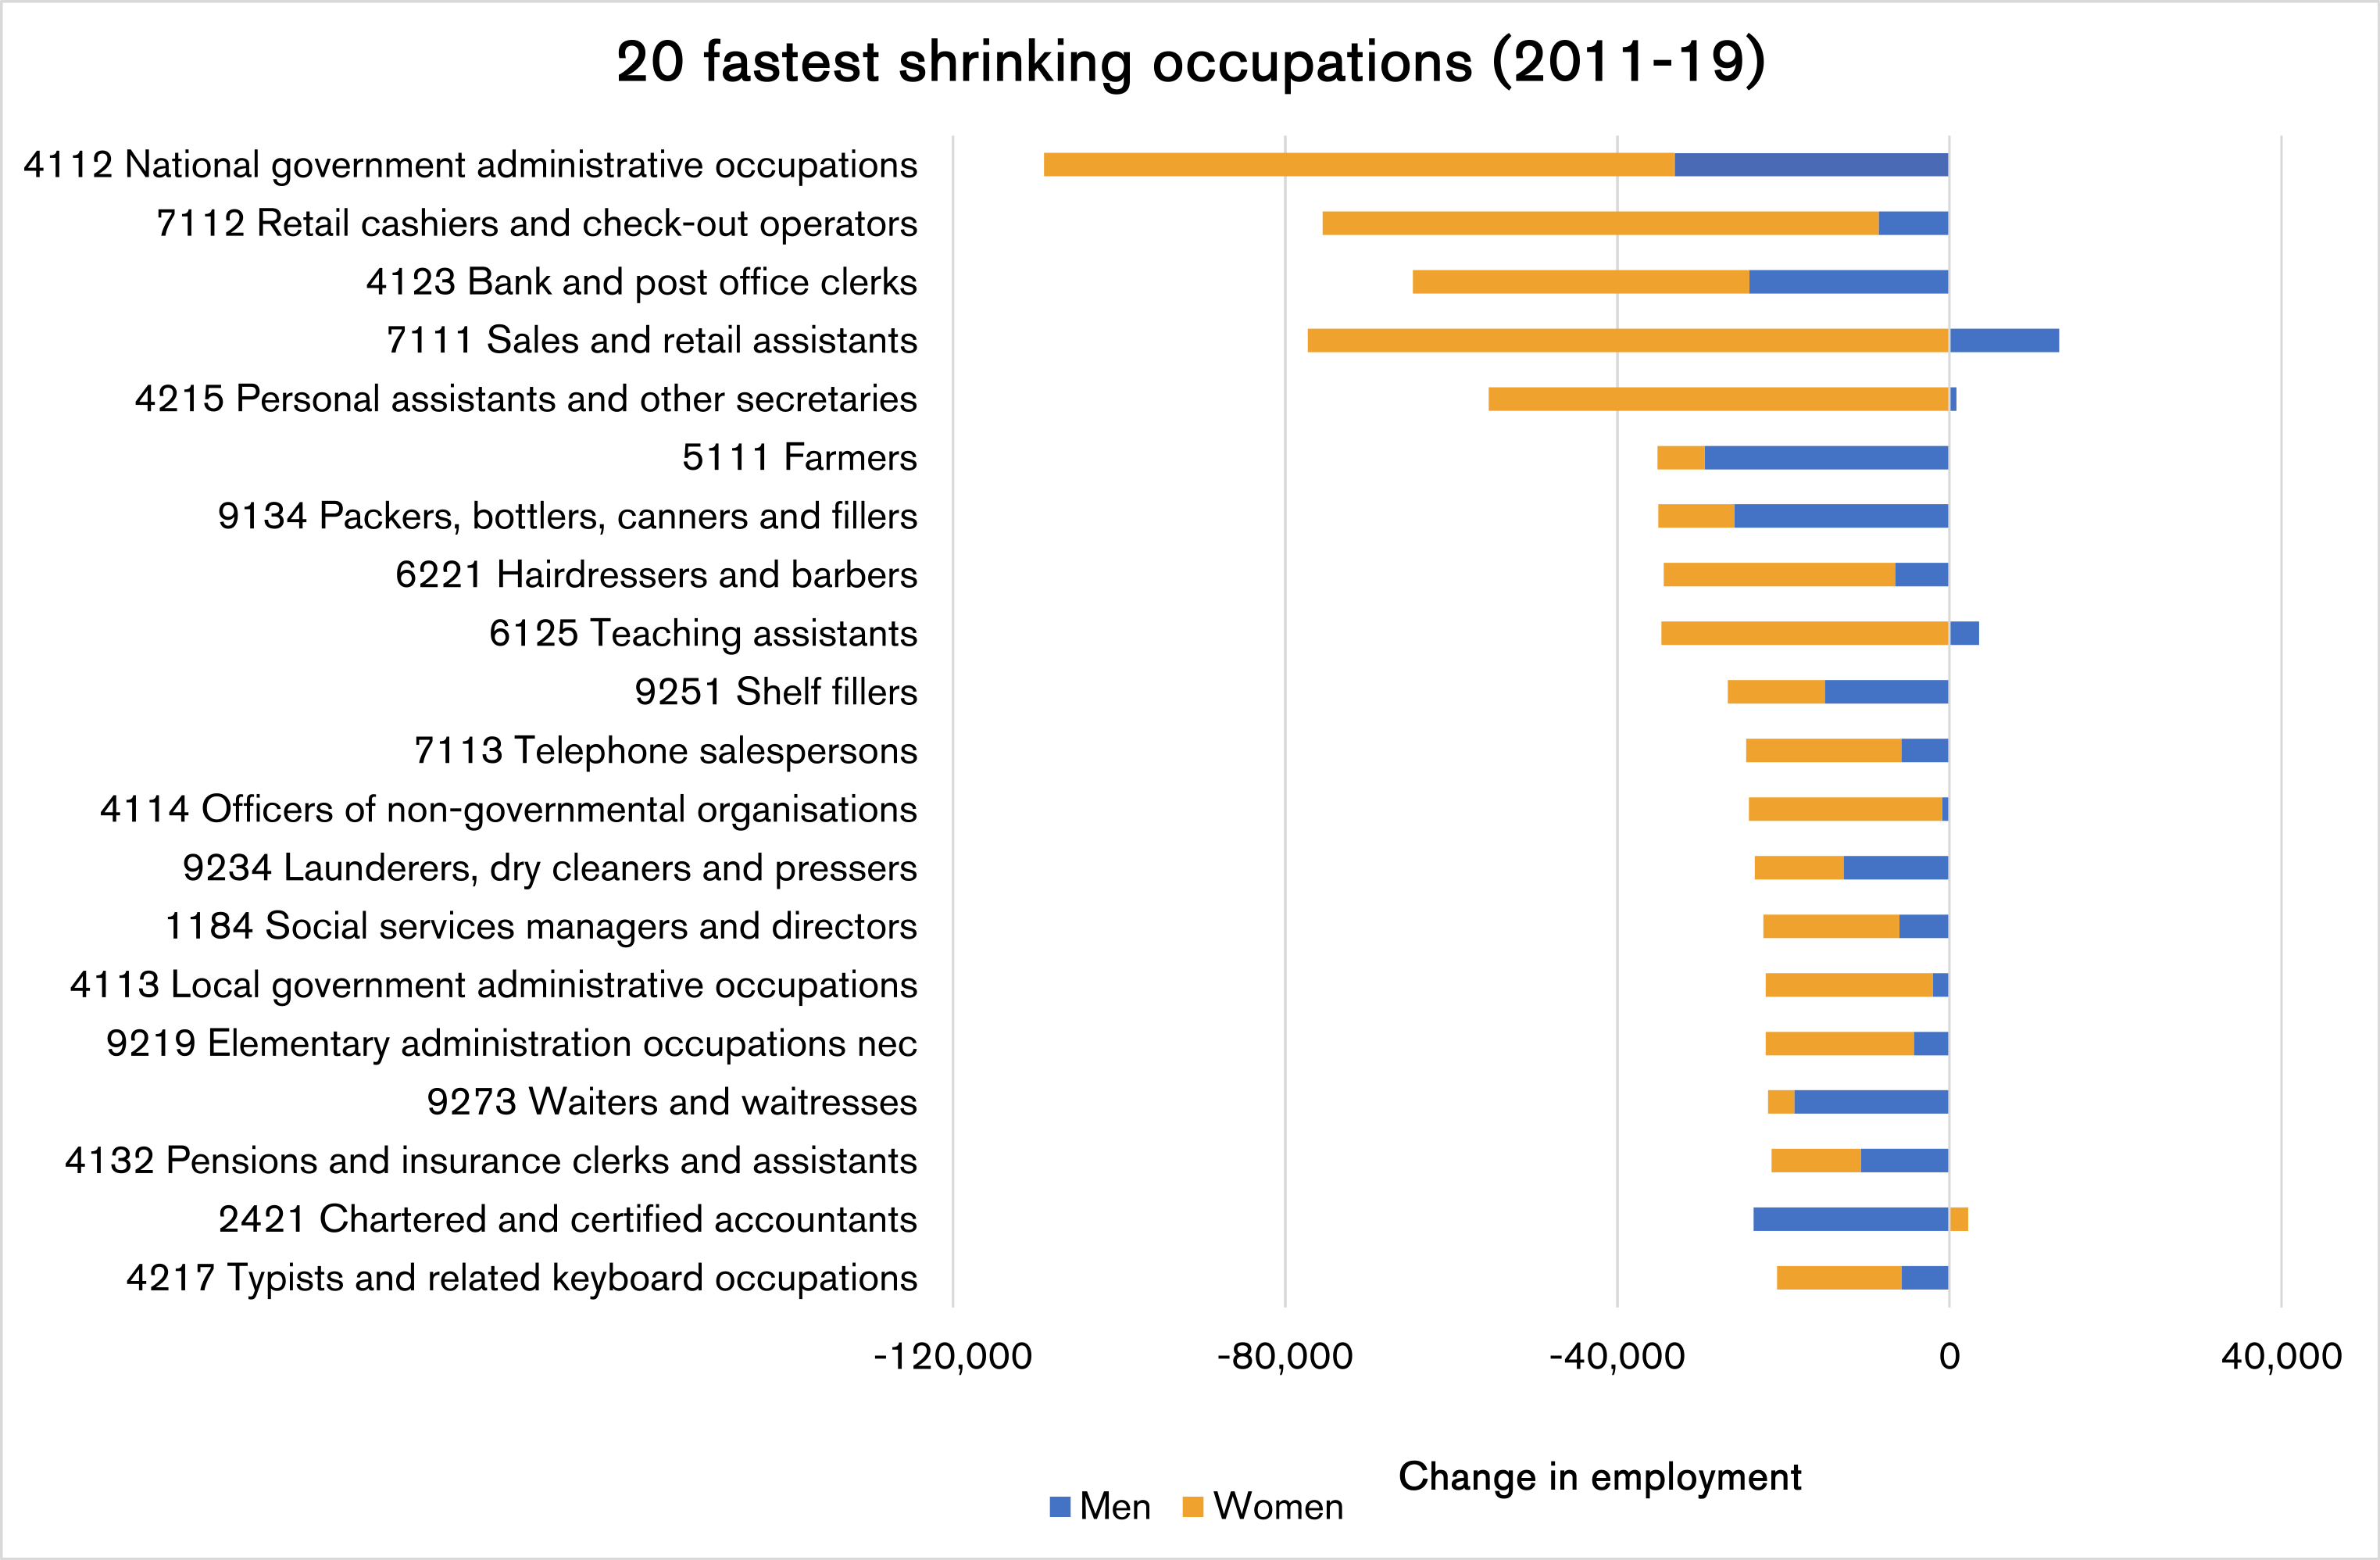 20 fastest shrinking occupations (2011-2019)